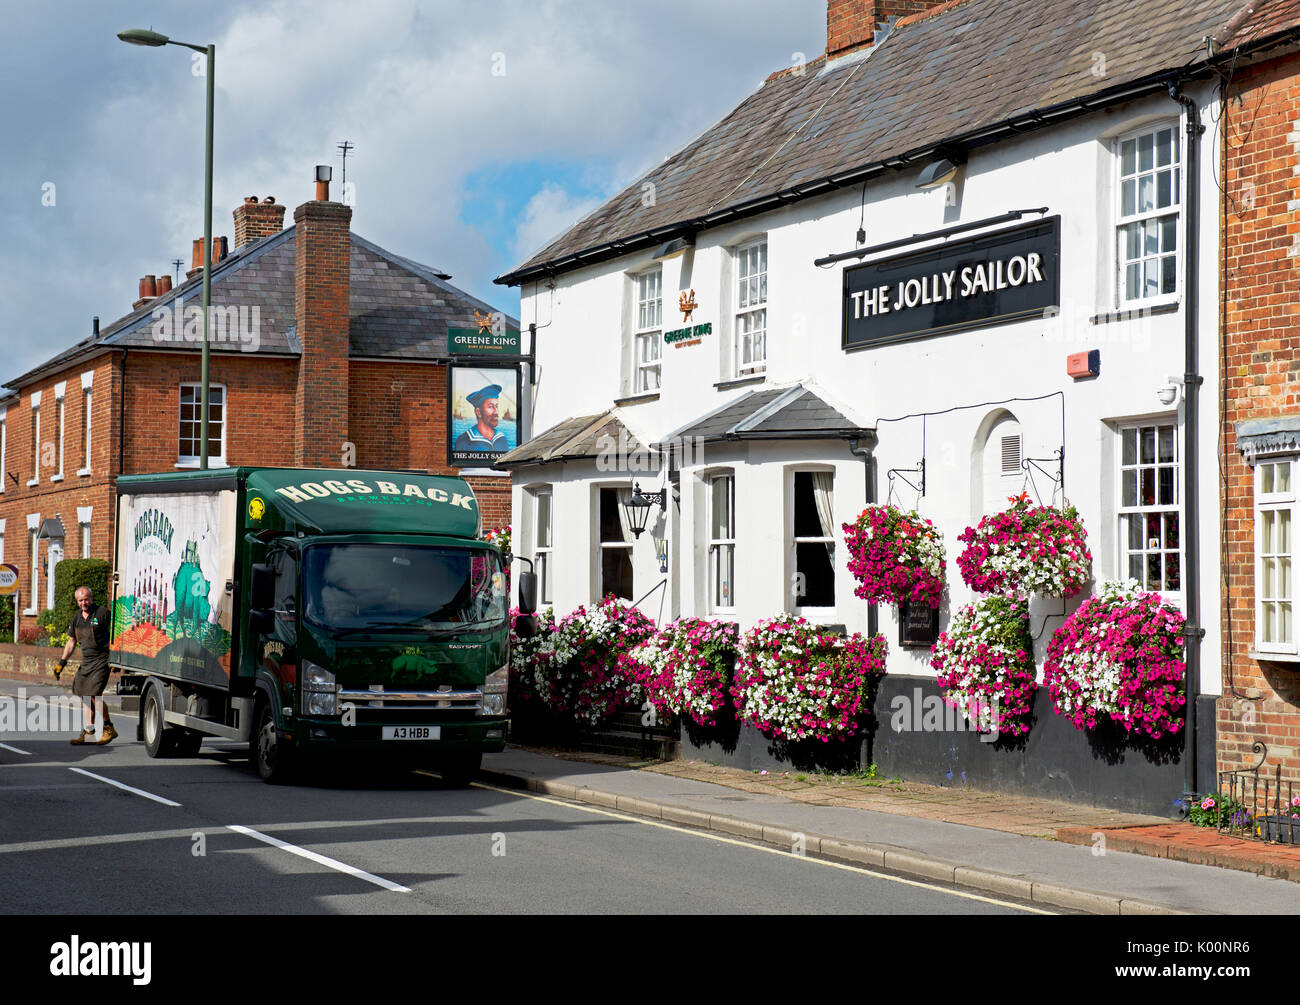 Beer delivery at the Jolly Sailor pub, West Street, Farnham, Surrey, England UK - Stock Image